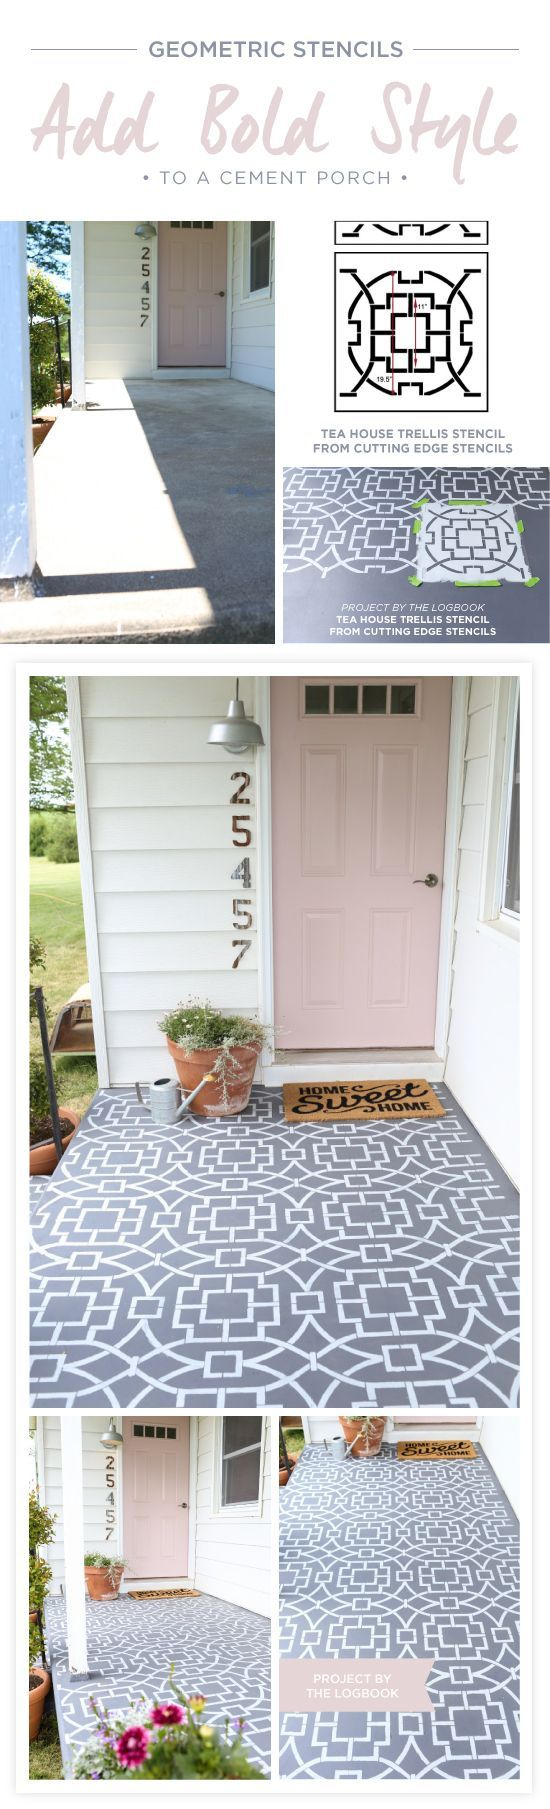 Cutting edge stencils shares a diy stenciled concrete porch makeover using the tea house trellis allover